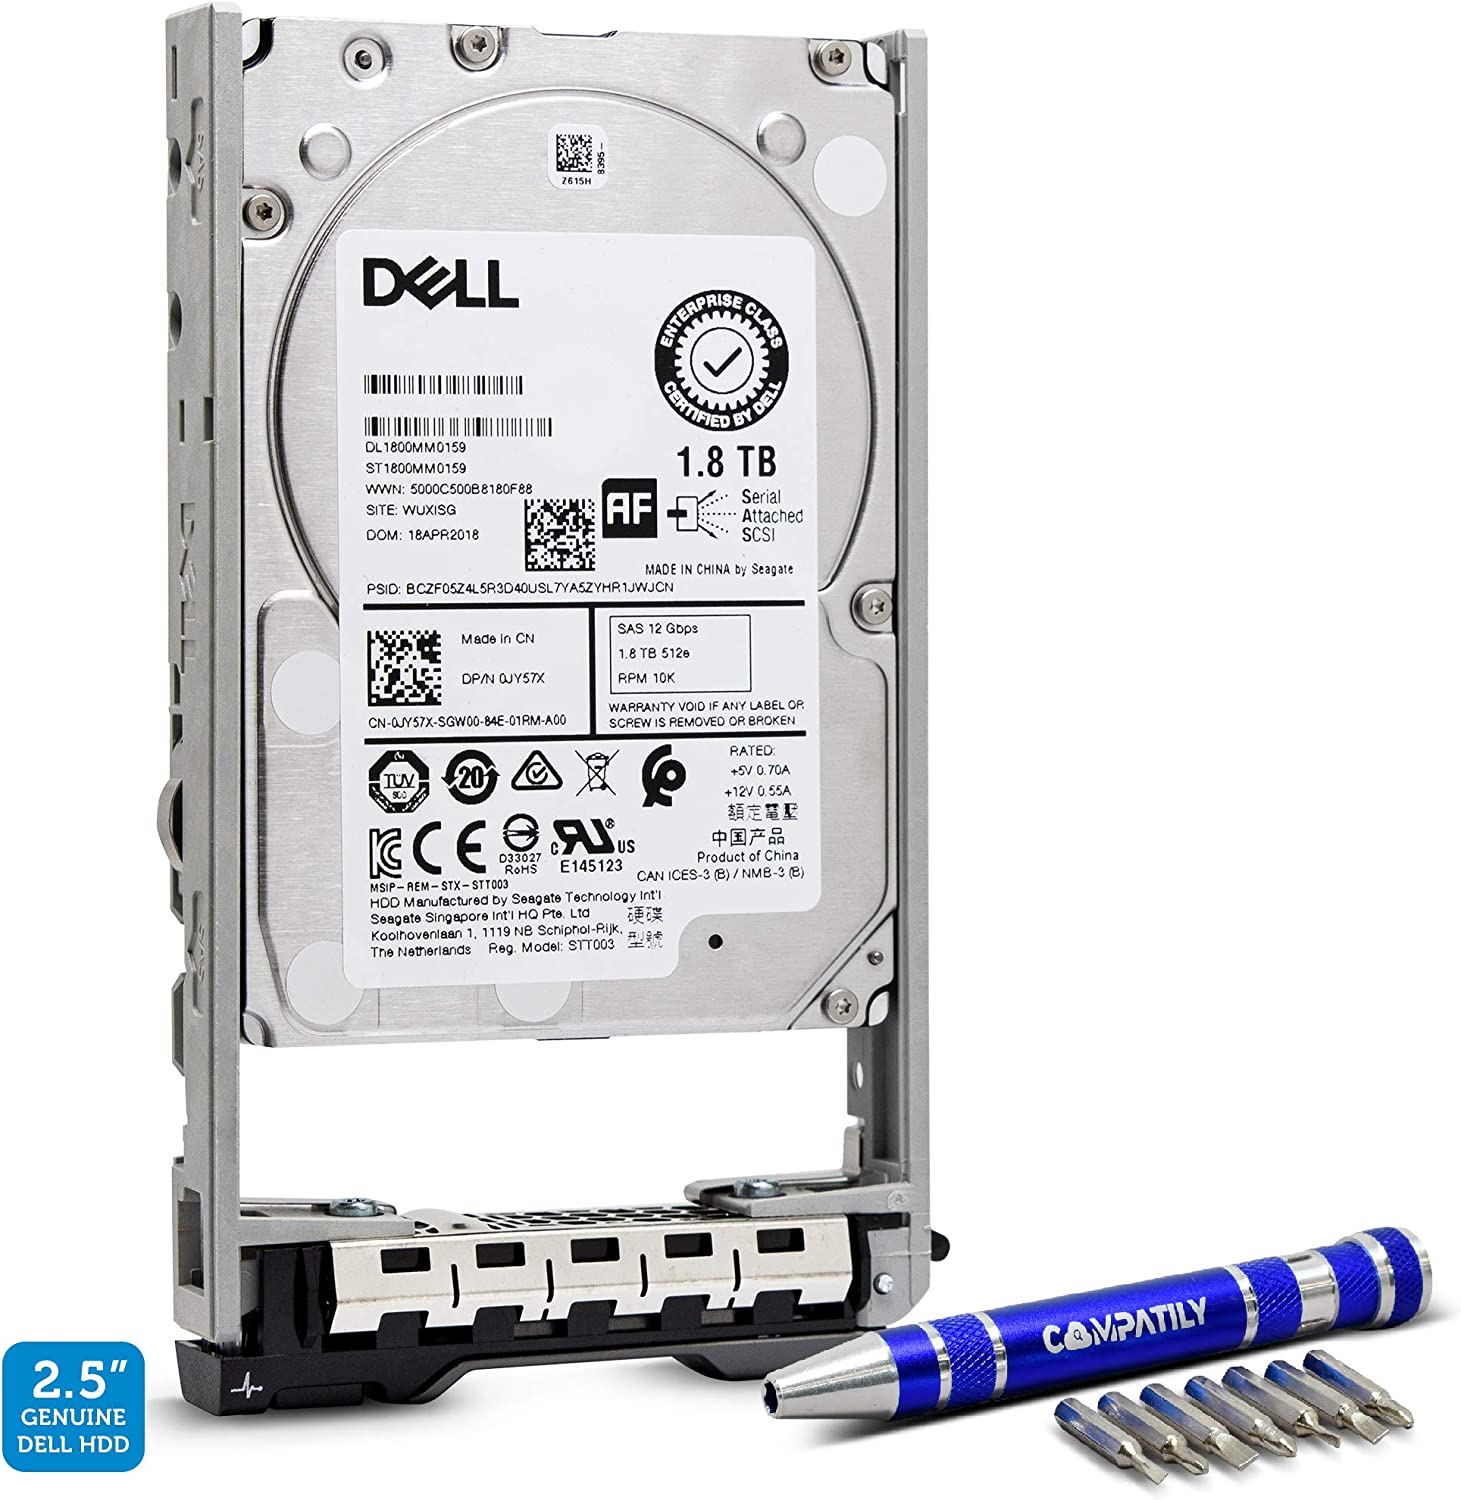 Dell 400-AJQP 1.8TB 10K RPM SAS 12Gb/s 2.5-Inch Hard Drive in 13G Tray Bundle with Compatily Screwdriver Compatible in PowerEdge R630 R730 R730XD R430 T430 R230 PowerVault ME4024 ME424